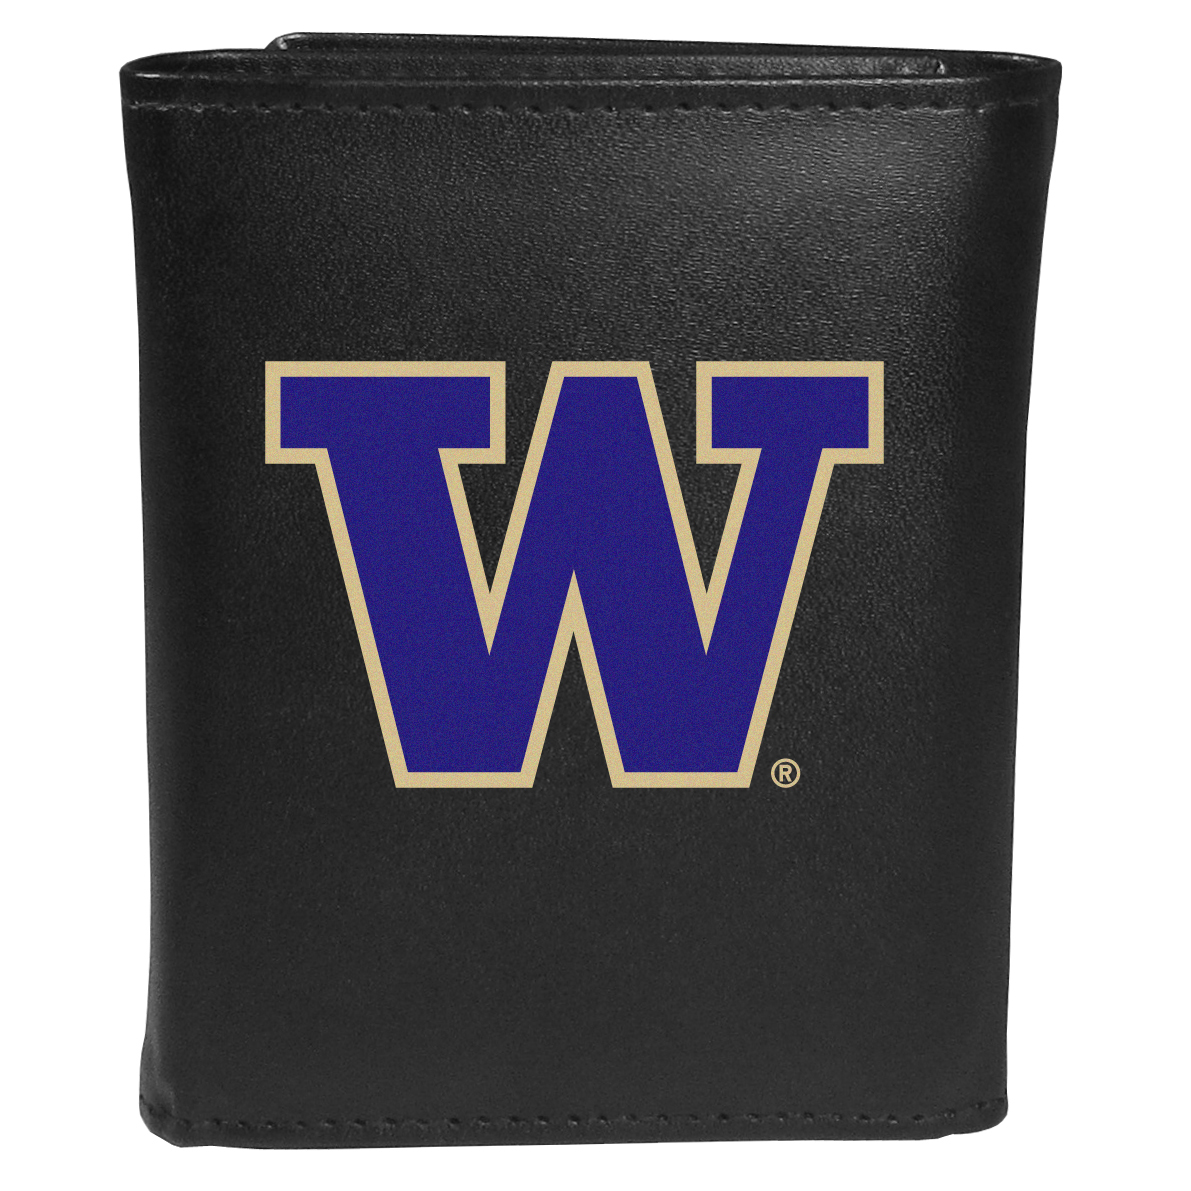 Washington Huskies Tri-fold Wallet Large Logo - Sports fans do not have to sacrifice style with this classic tri-fold wallet that sports theWashington Huskies?extra large logo. This men's fashion accessory has a leather grain look and expert craftmanship for a quality wallet at a great price. The wallet features inner credit card slots, windowed ID slot and a large billfold pocket. The front of the wallet features an extra large printed team logo.